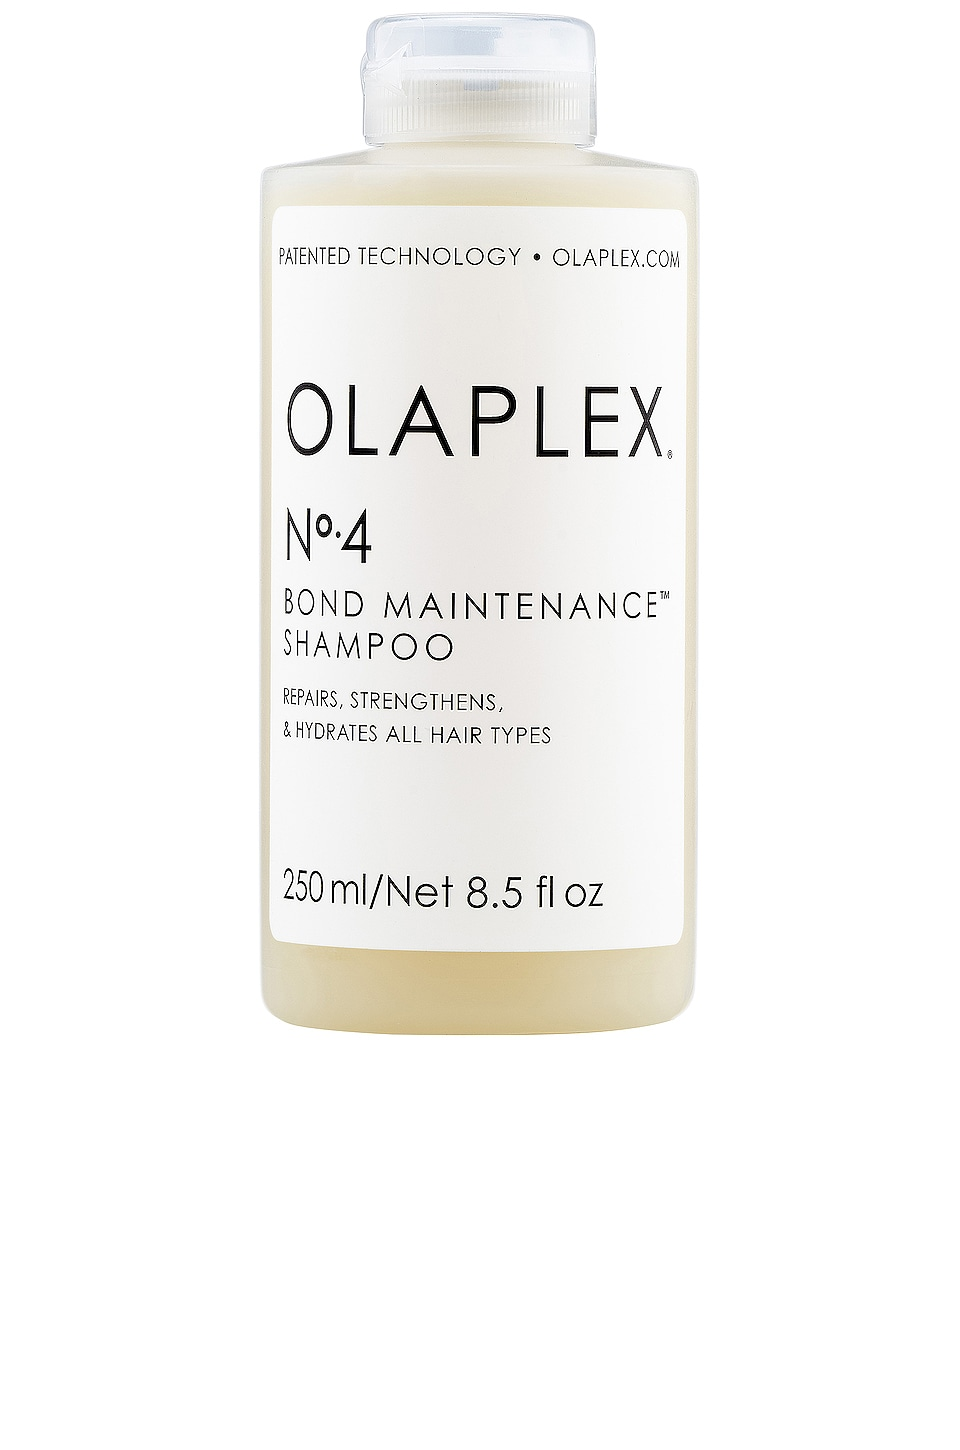 OLAPLEX SHAMPOING NO. 4 BOND MAINTENANCE SHAMPOO